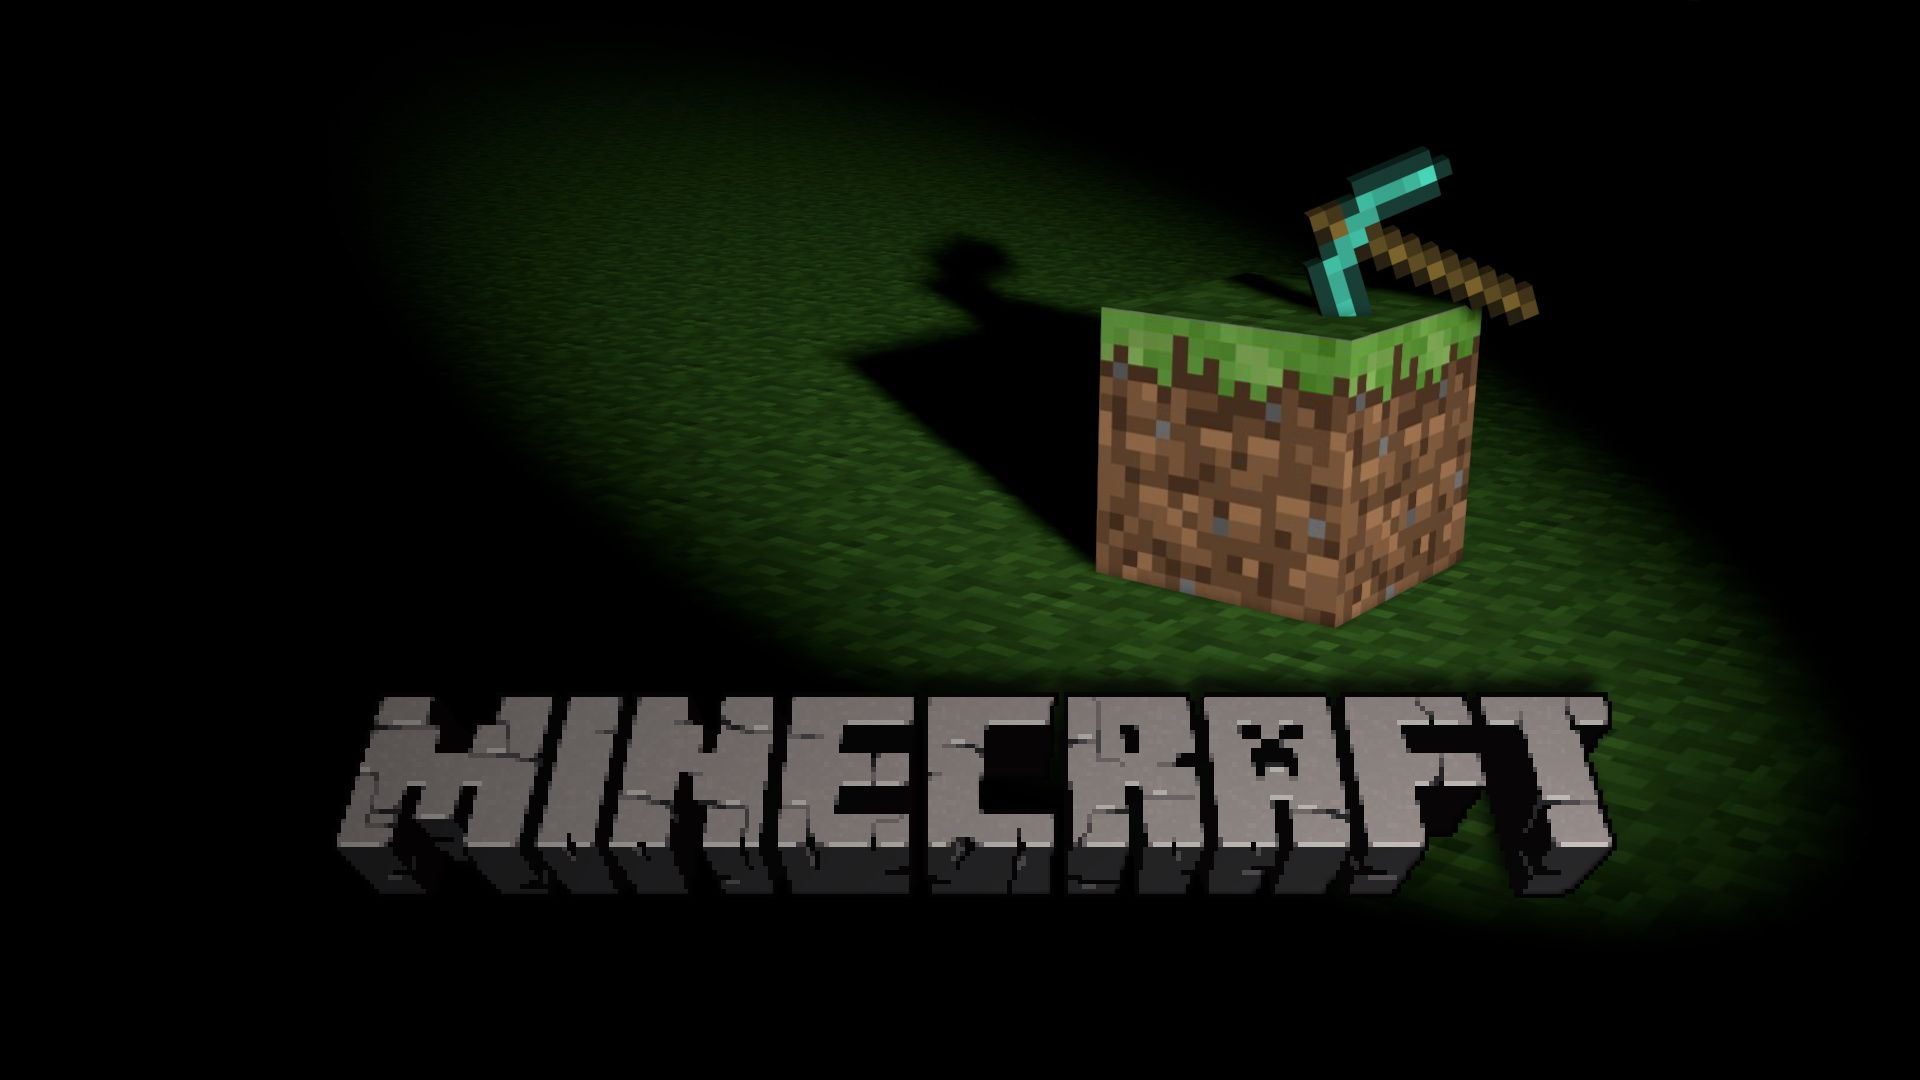 Minecraft Hd Wallpapers Top Free Minecraft Hd Backgrounds Wallpaperaccess